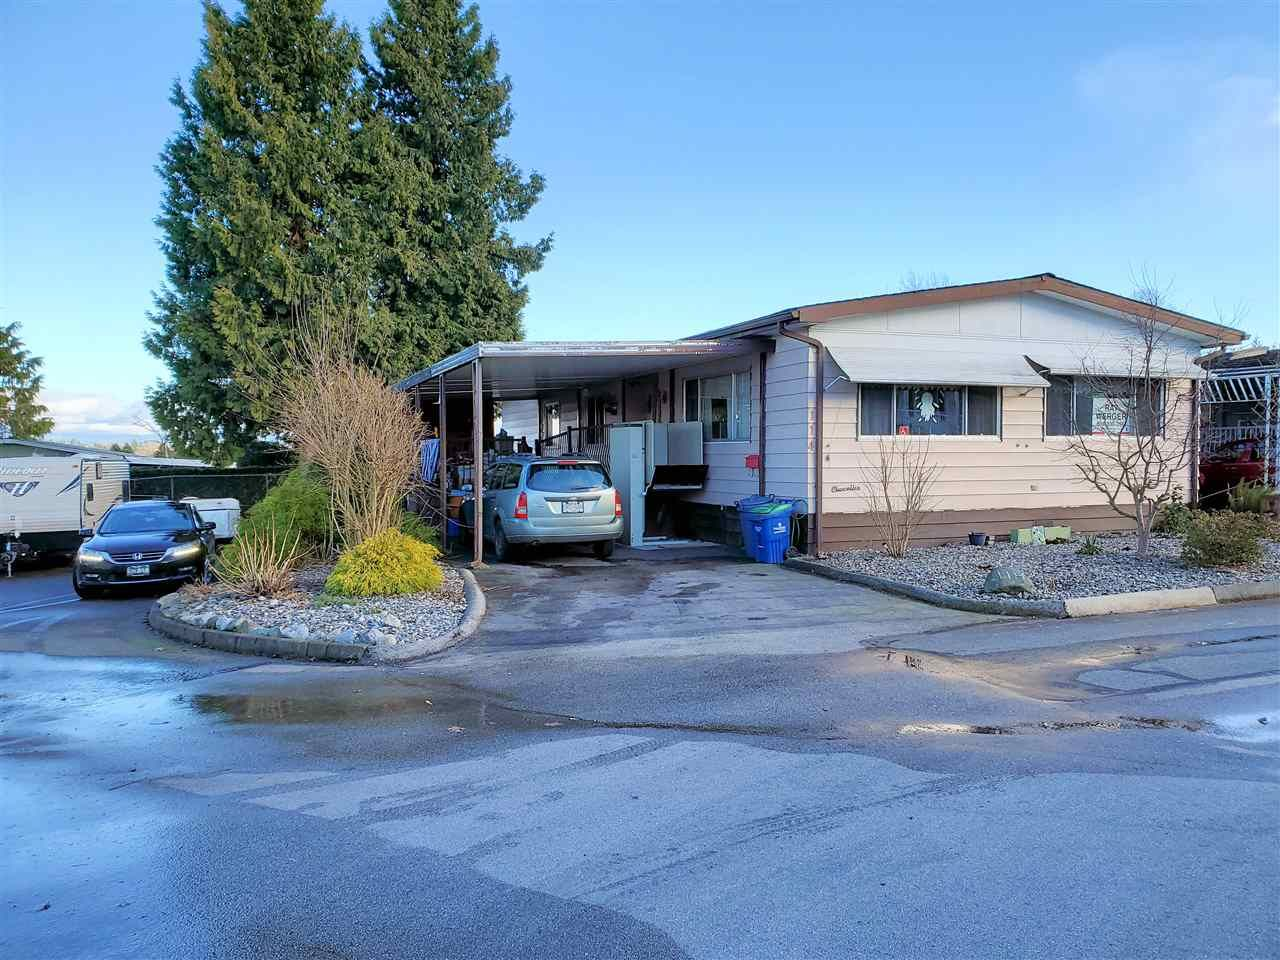 """Main Photo: 114 8234 134 Street in Surrey: Queen Mary Park Surrey Manufactured Home for sale in """"WESTWOOD GATE"""" : MLS®# R2536332"""